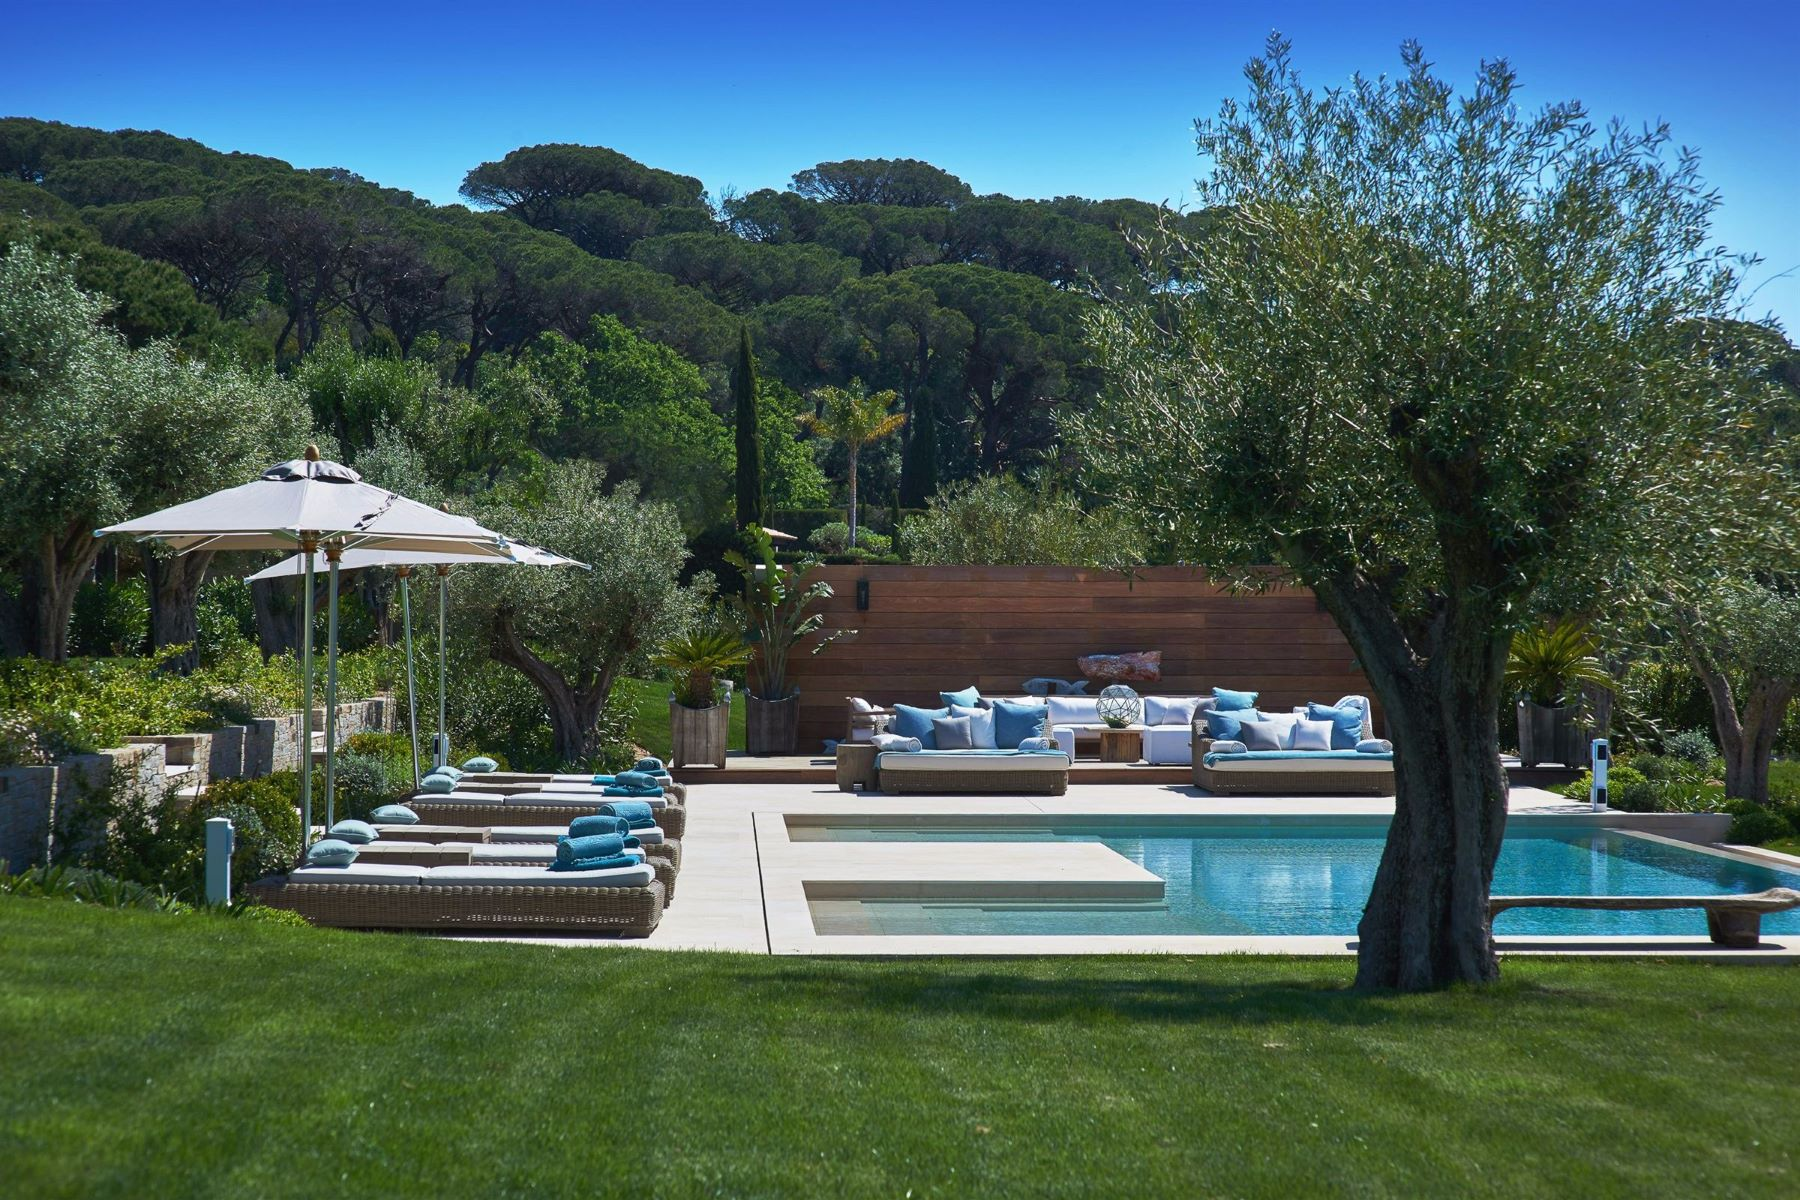 Additional photo for property listing at Sole agent - Le Mas du Figuier - high-end property in Saint-Tropez  Saint Tropez, Provence-Alpes-Cote D'Azur 83990 France